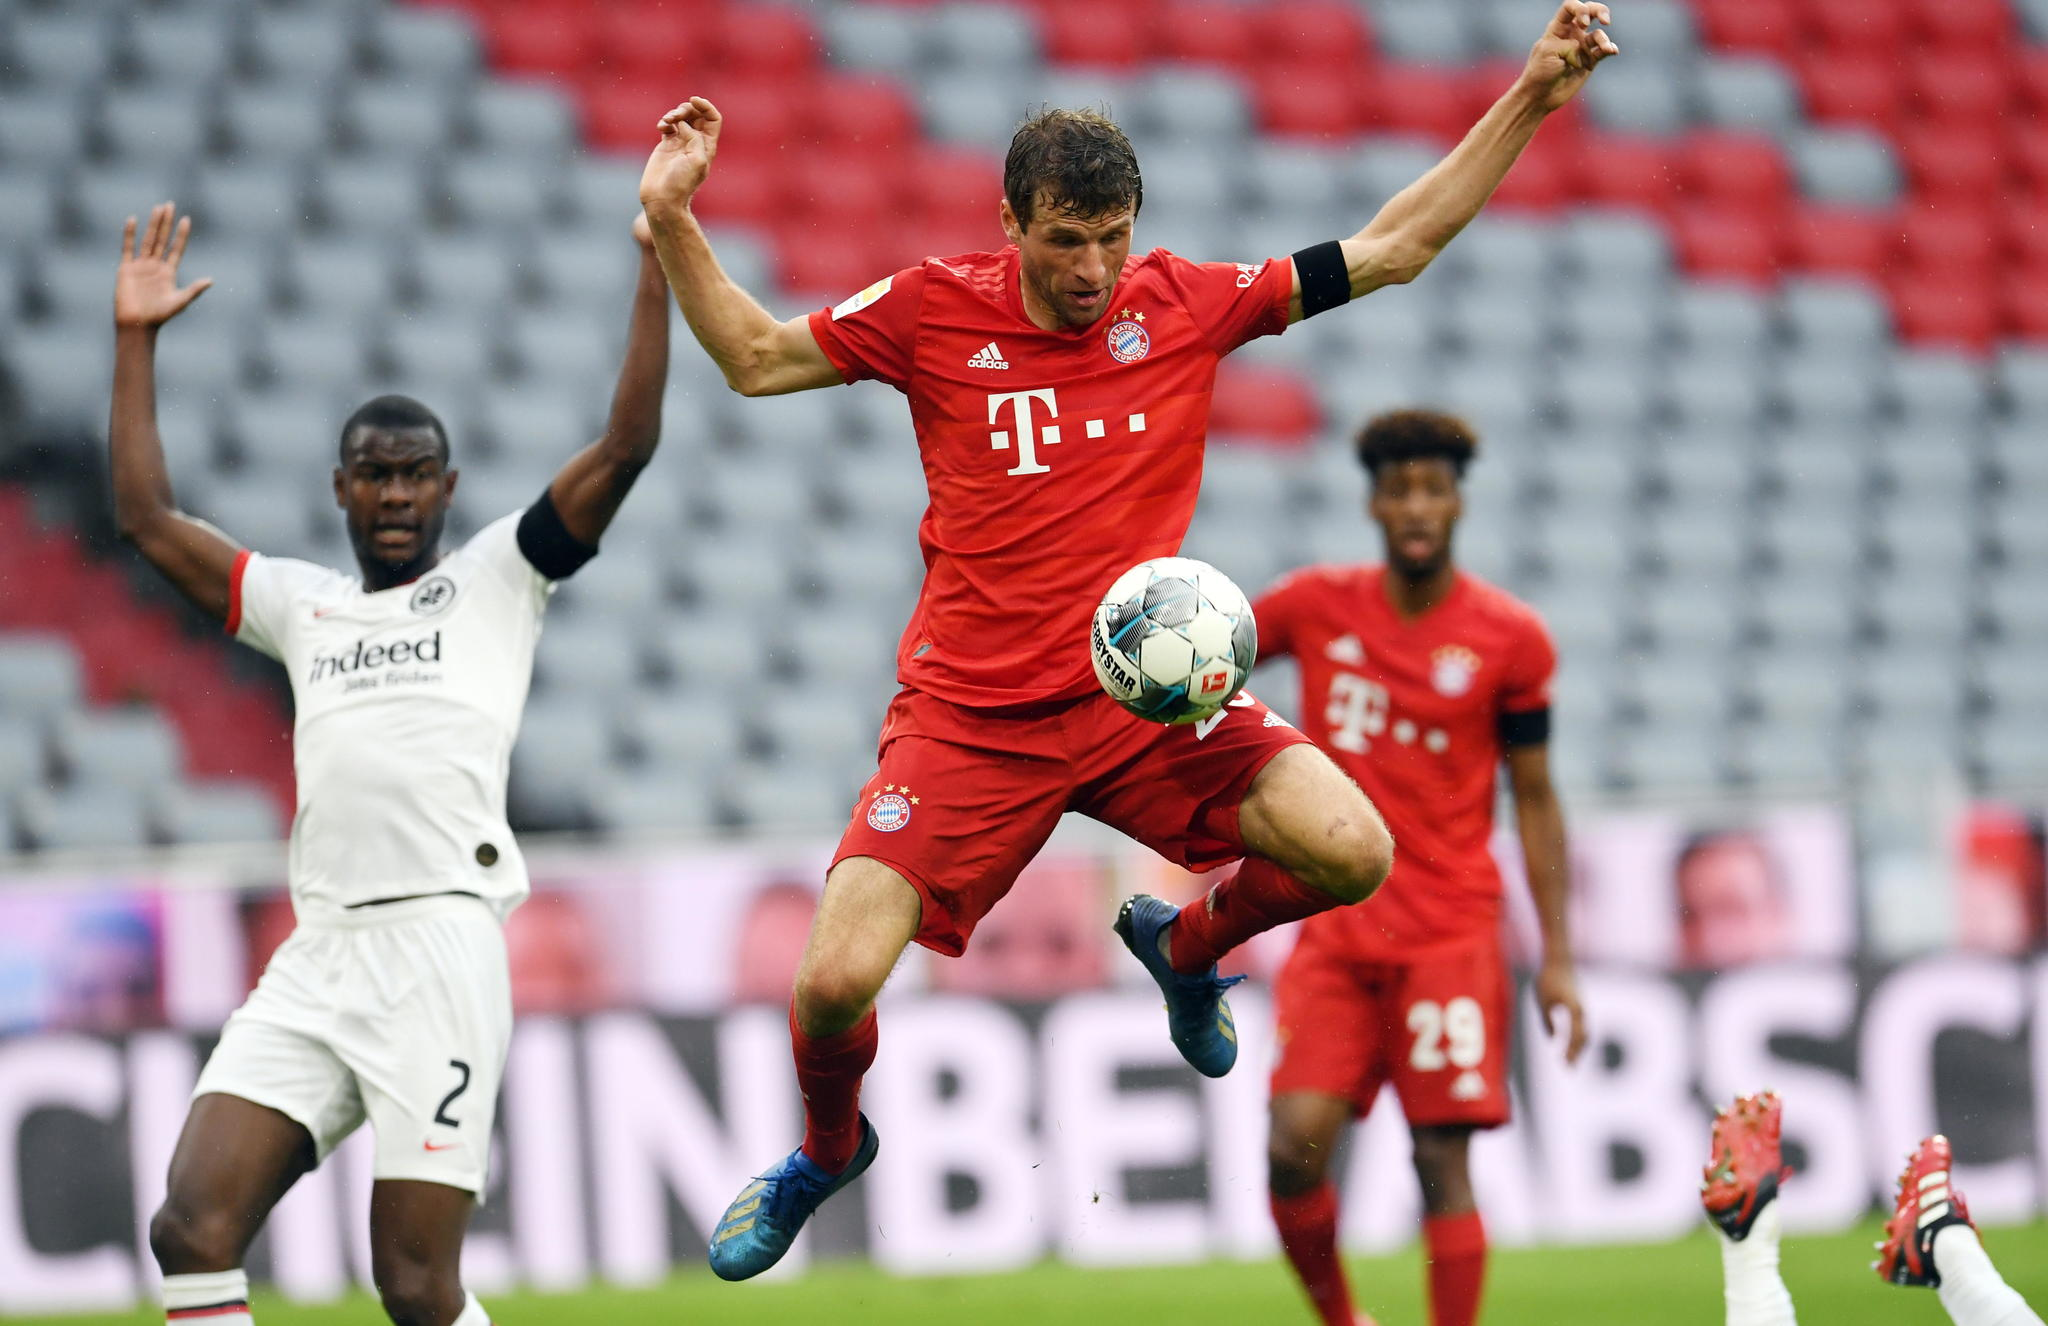 Munich (Germany), 23/05/2020.- Bayern Munichs Thomas lt;HIT gt;Muller lt;/HIT gt; (C) scores during the German Bundesliga soccer match Bayern Munich vs Eintracht Frankfurt in Munich, Germany, 23 May 2020. The German Bundesliga is the worlds first major soccer league to resume after a two-month suspension because of the Coronavirus pandemic. (Alemania) EFE/EPA/ANDREAS GEBERT / POOL DFL regulations prohibit any use of photographs as image sequences and/or quasi-video